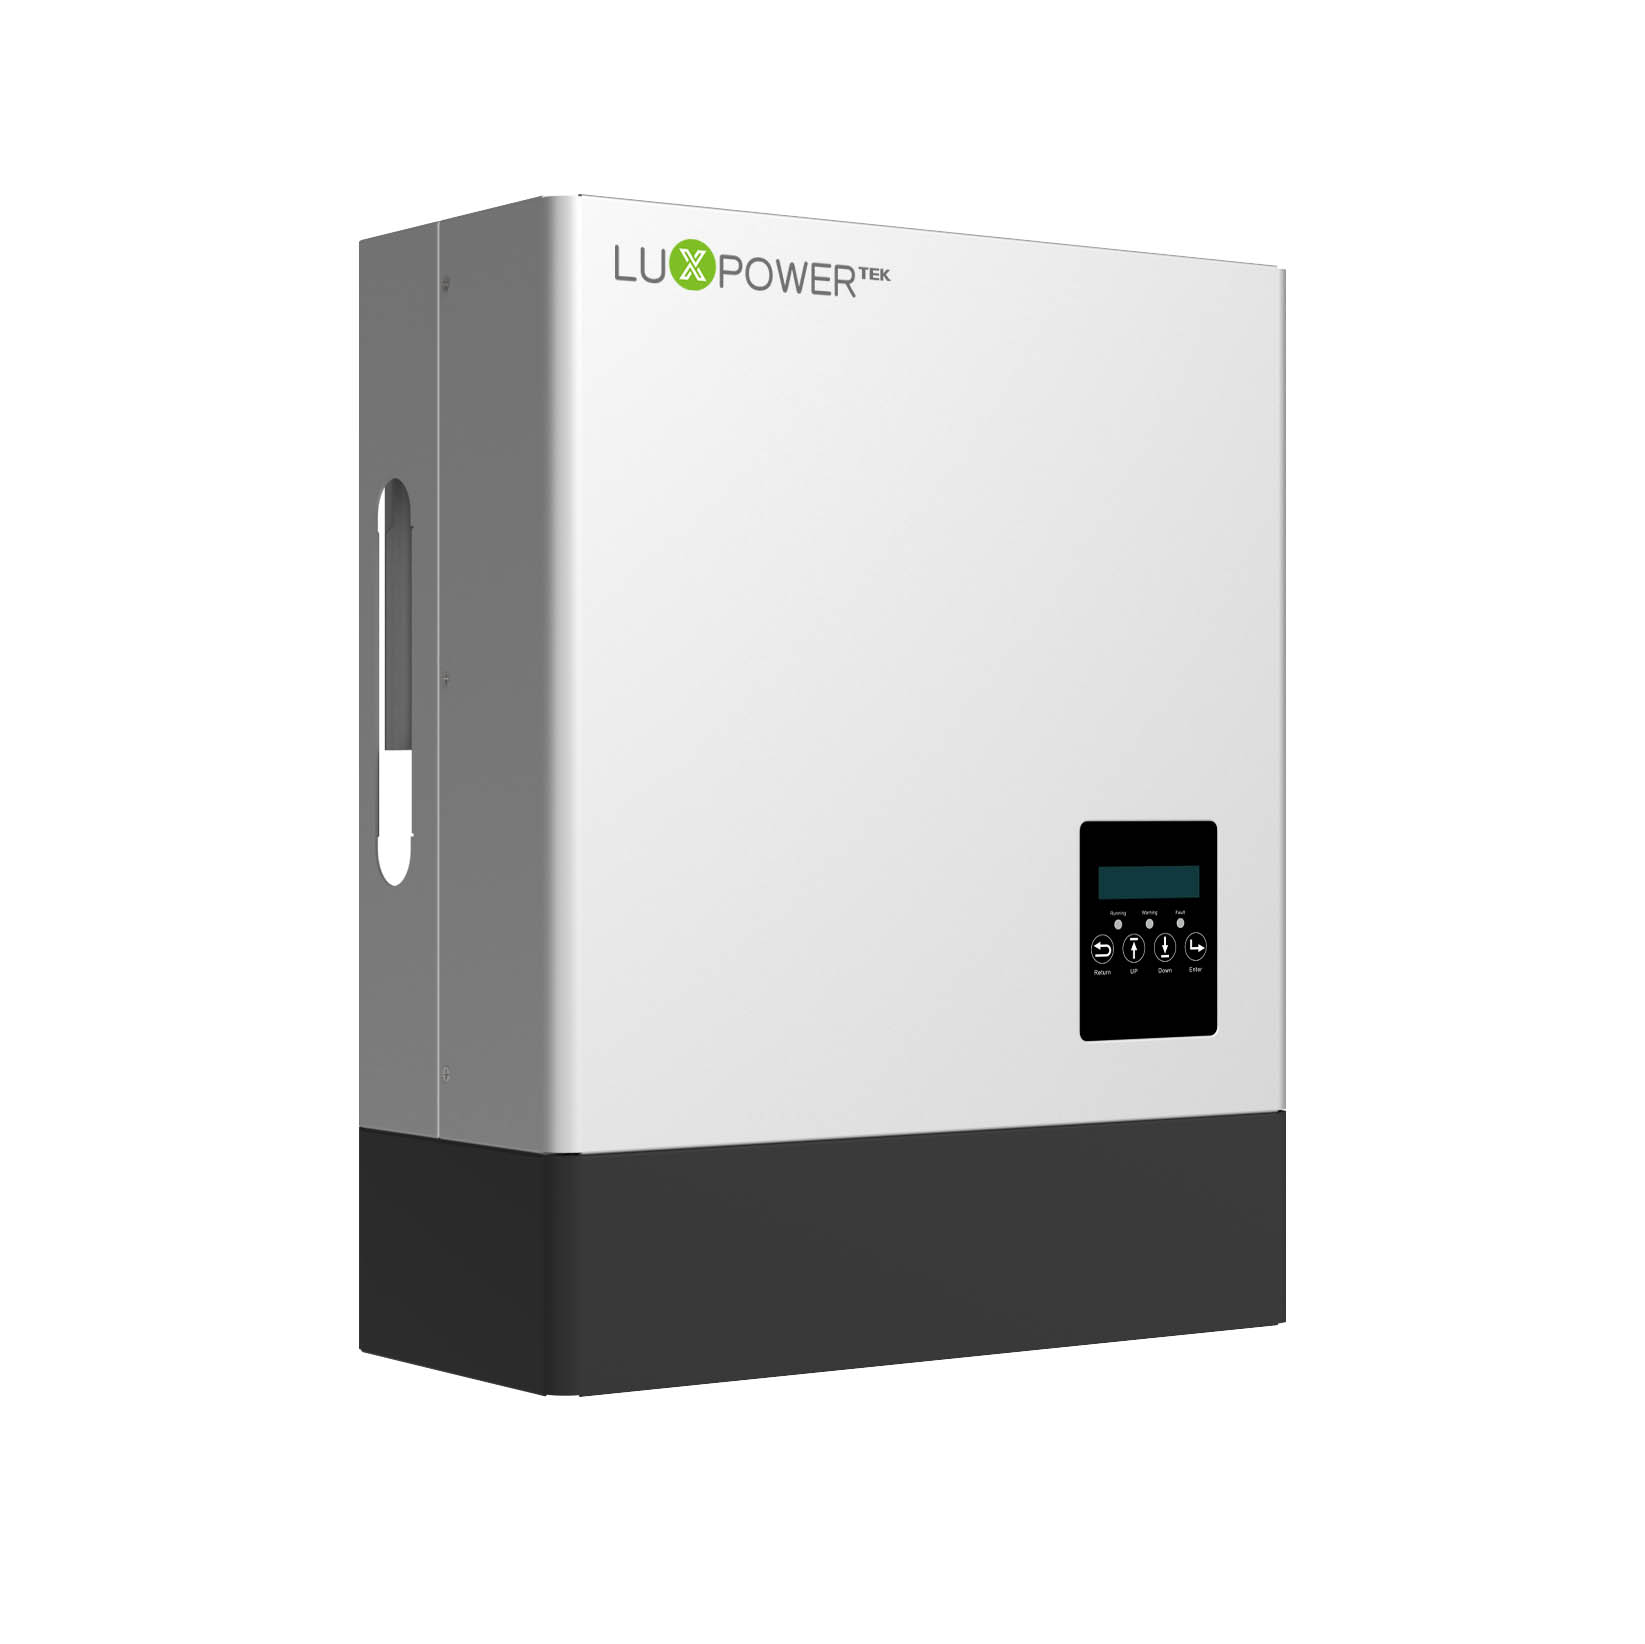 Factory making Luxpower 5k Hybrid Inverter - Hybrid-LV – LUX POWER